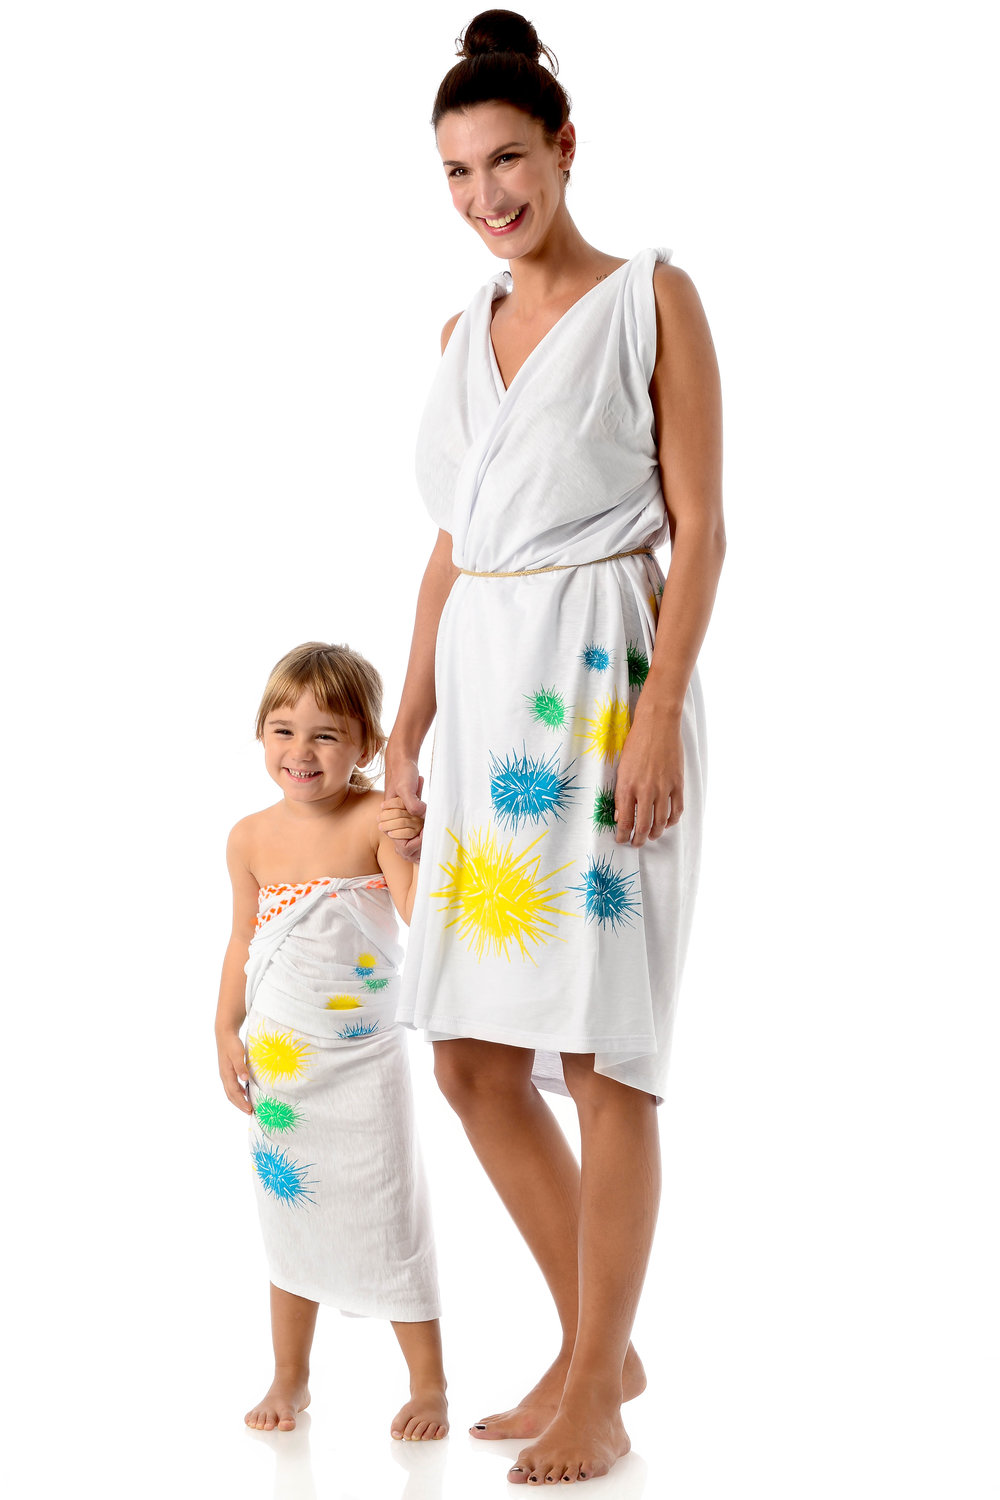 urchins-multi-color-design-on-white-cotton-kids-pareo-strapless-wraped-dress-matching-mother-daughter-style.jpg